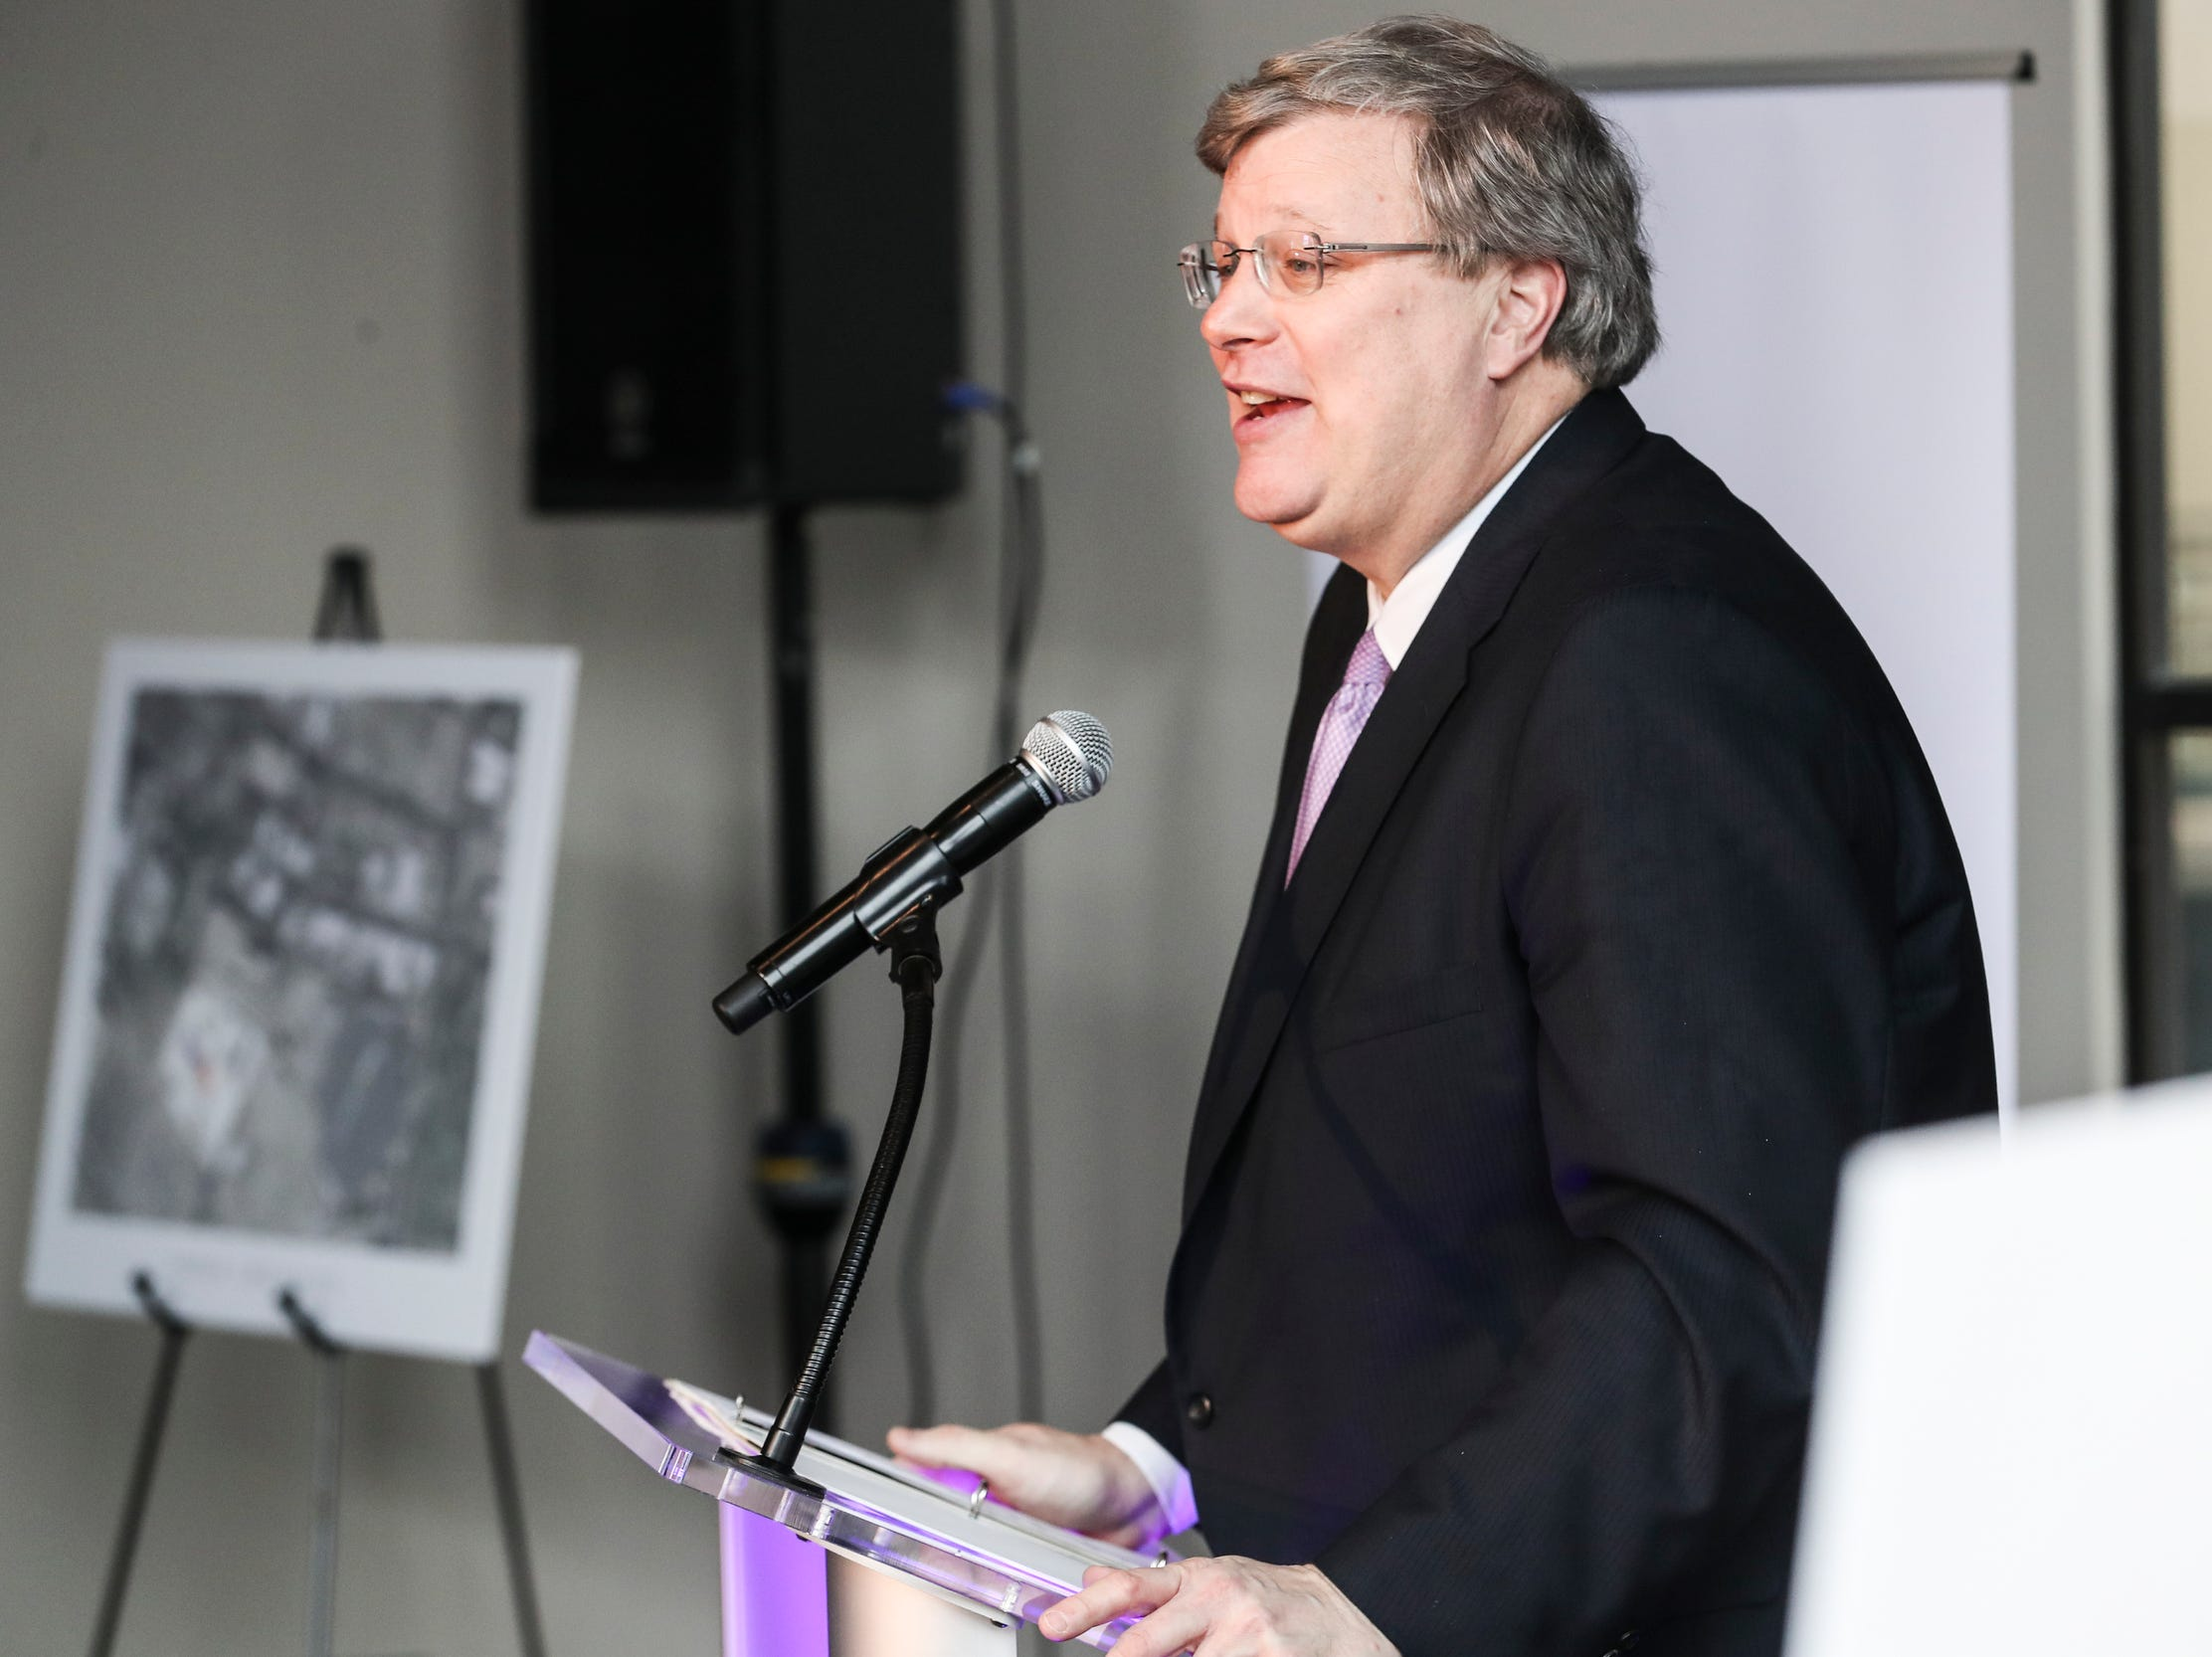 February 12, 2019 - Memphis Mayor Jim Strickland speaks during the announcement that FedEx Logistics is relocating to the Gibson Guitar Building. Gov. Bill Lee and local officials made the announcement Tuesday at the former guitar factory off Beale Street. This is Lee's first economic development announcement since taking office.